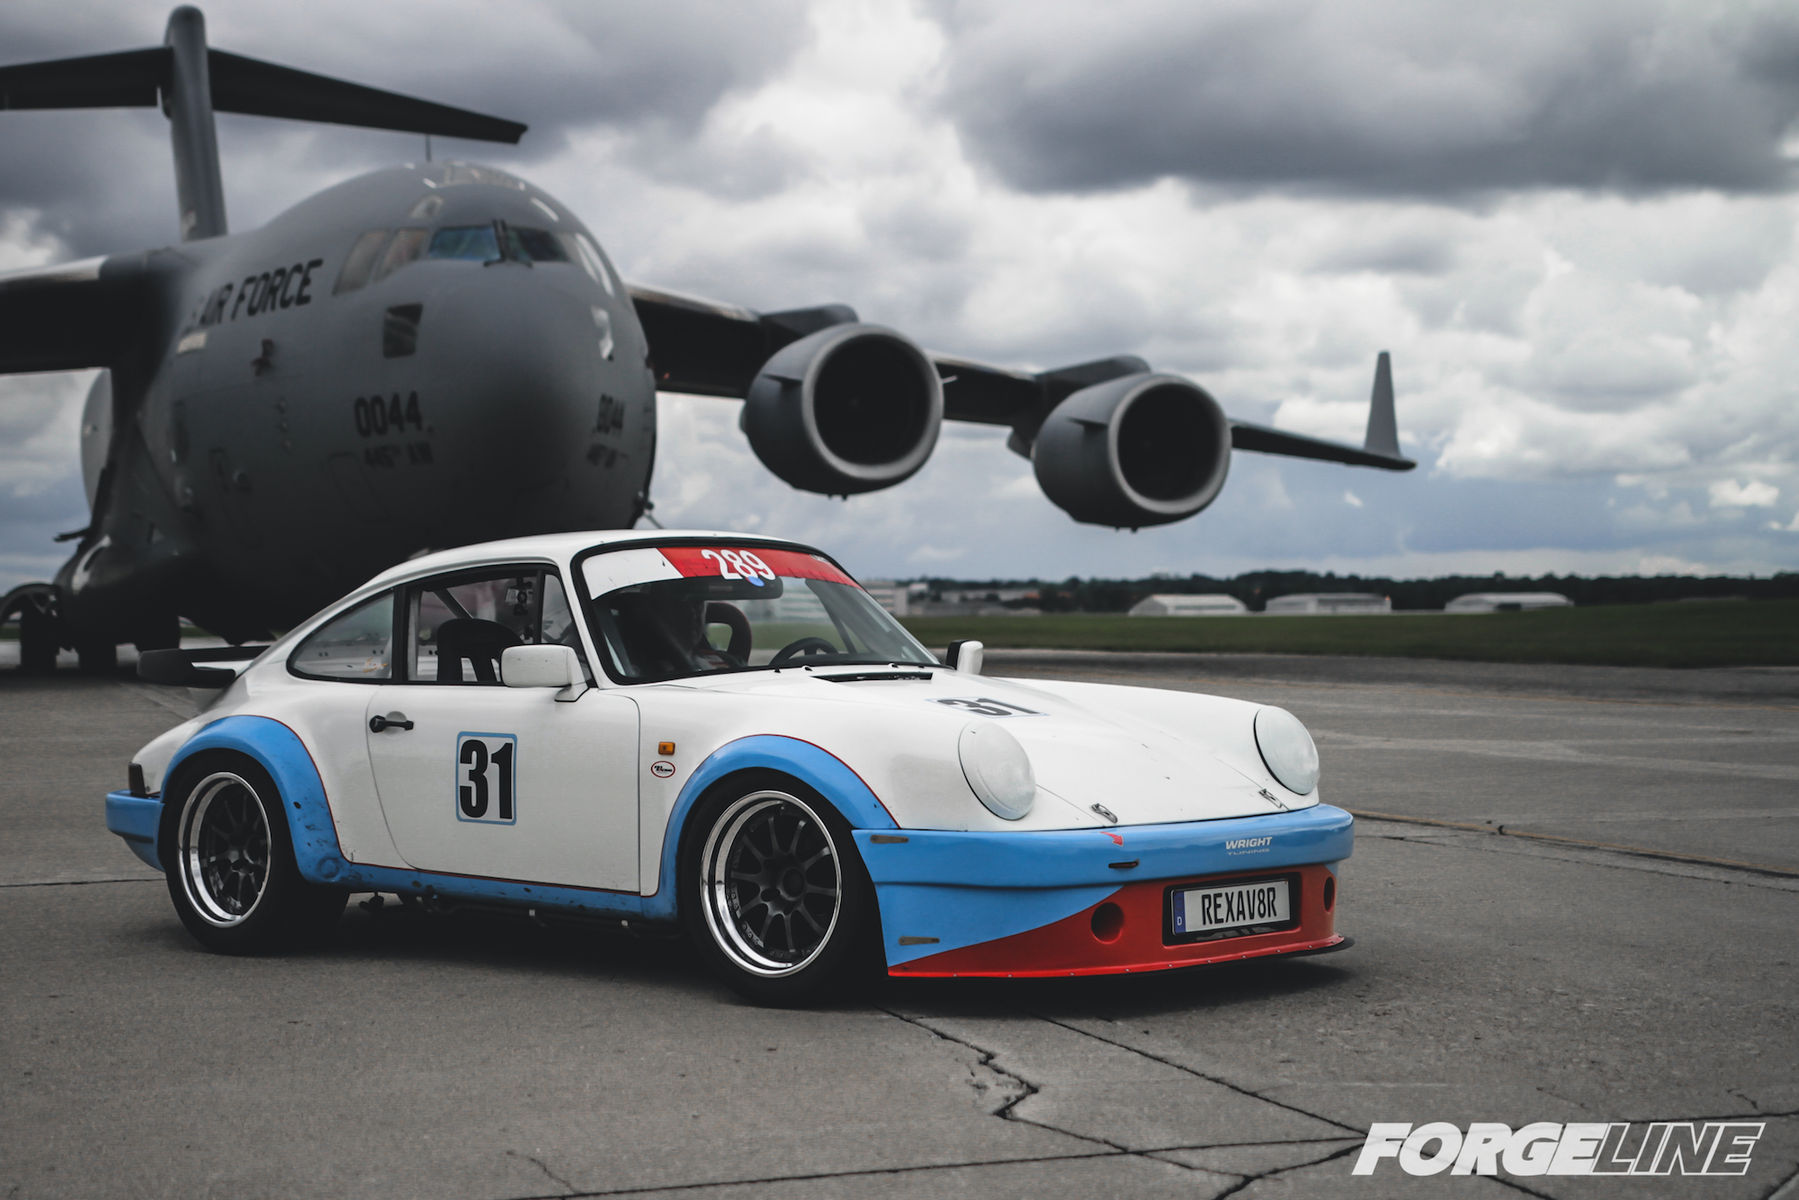 1976 Porsche 911 | Porsche 911 Track Car on Forgeline ZX3R Wheels